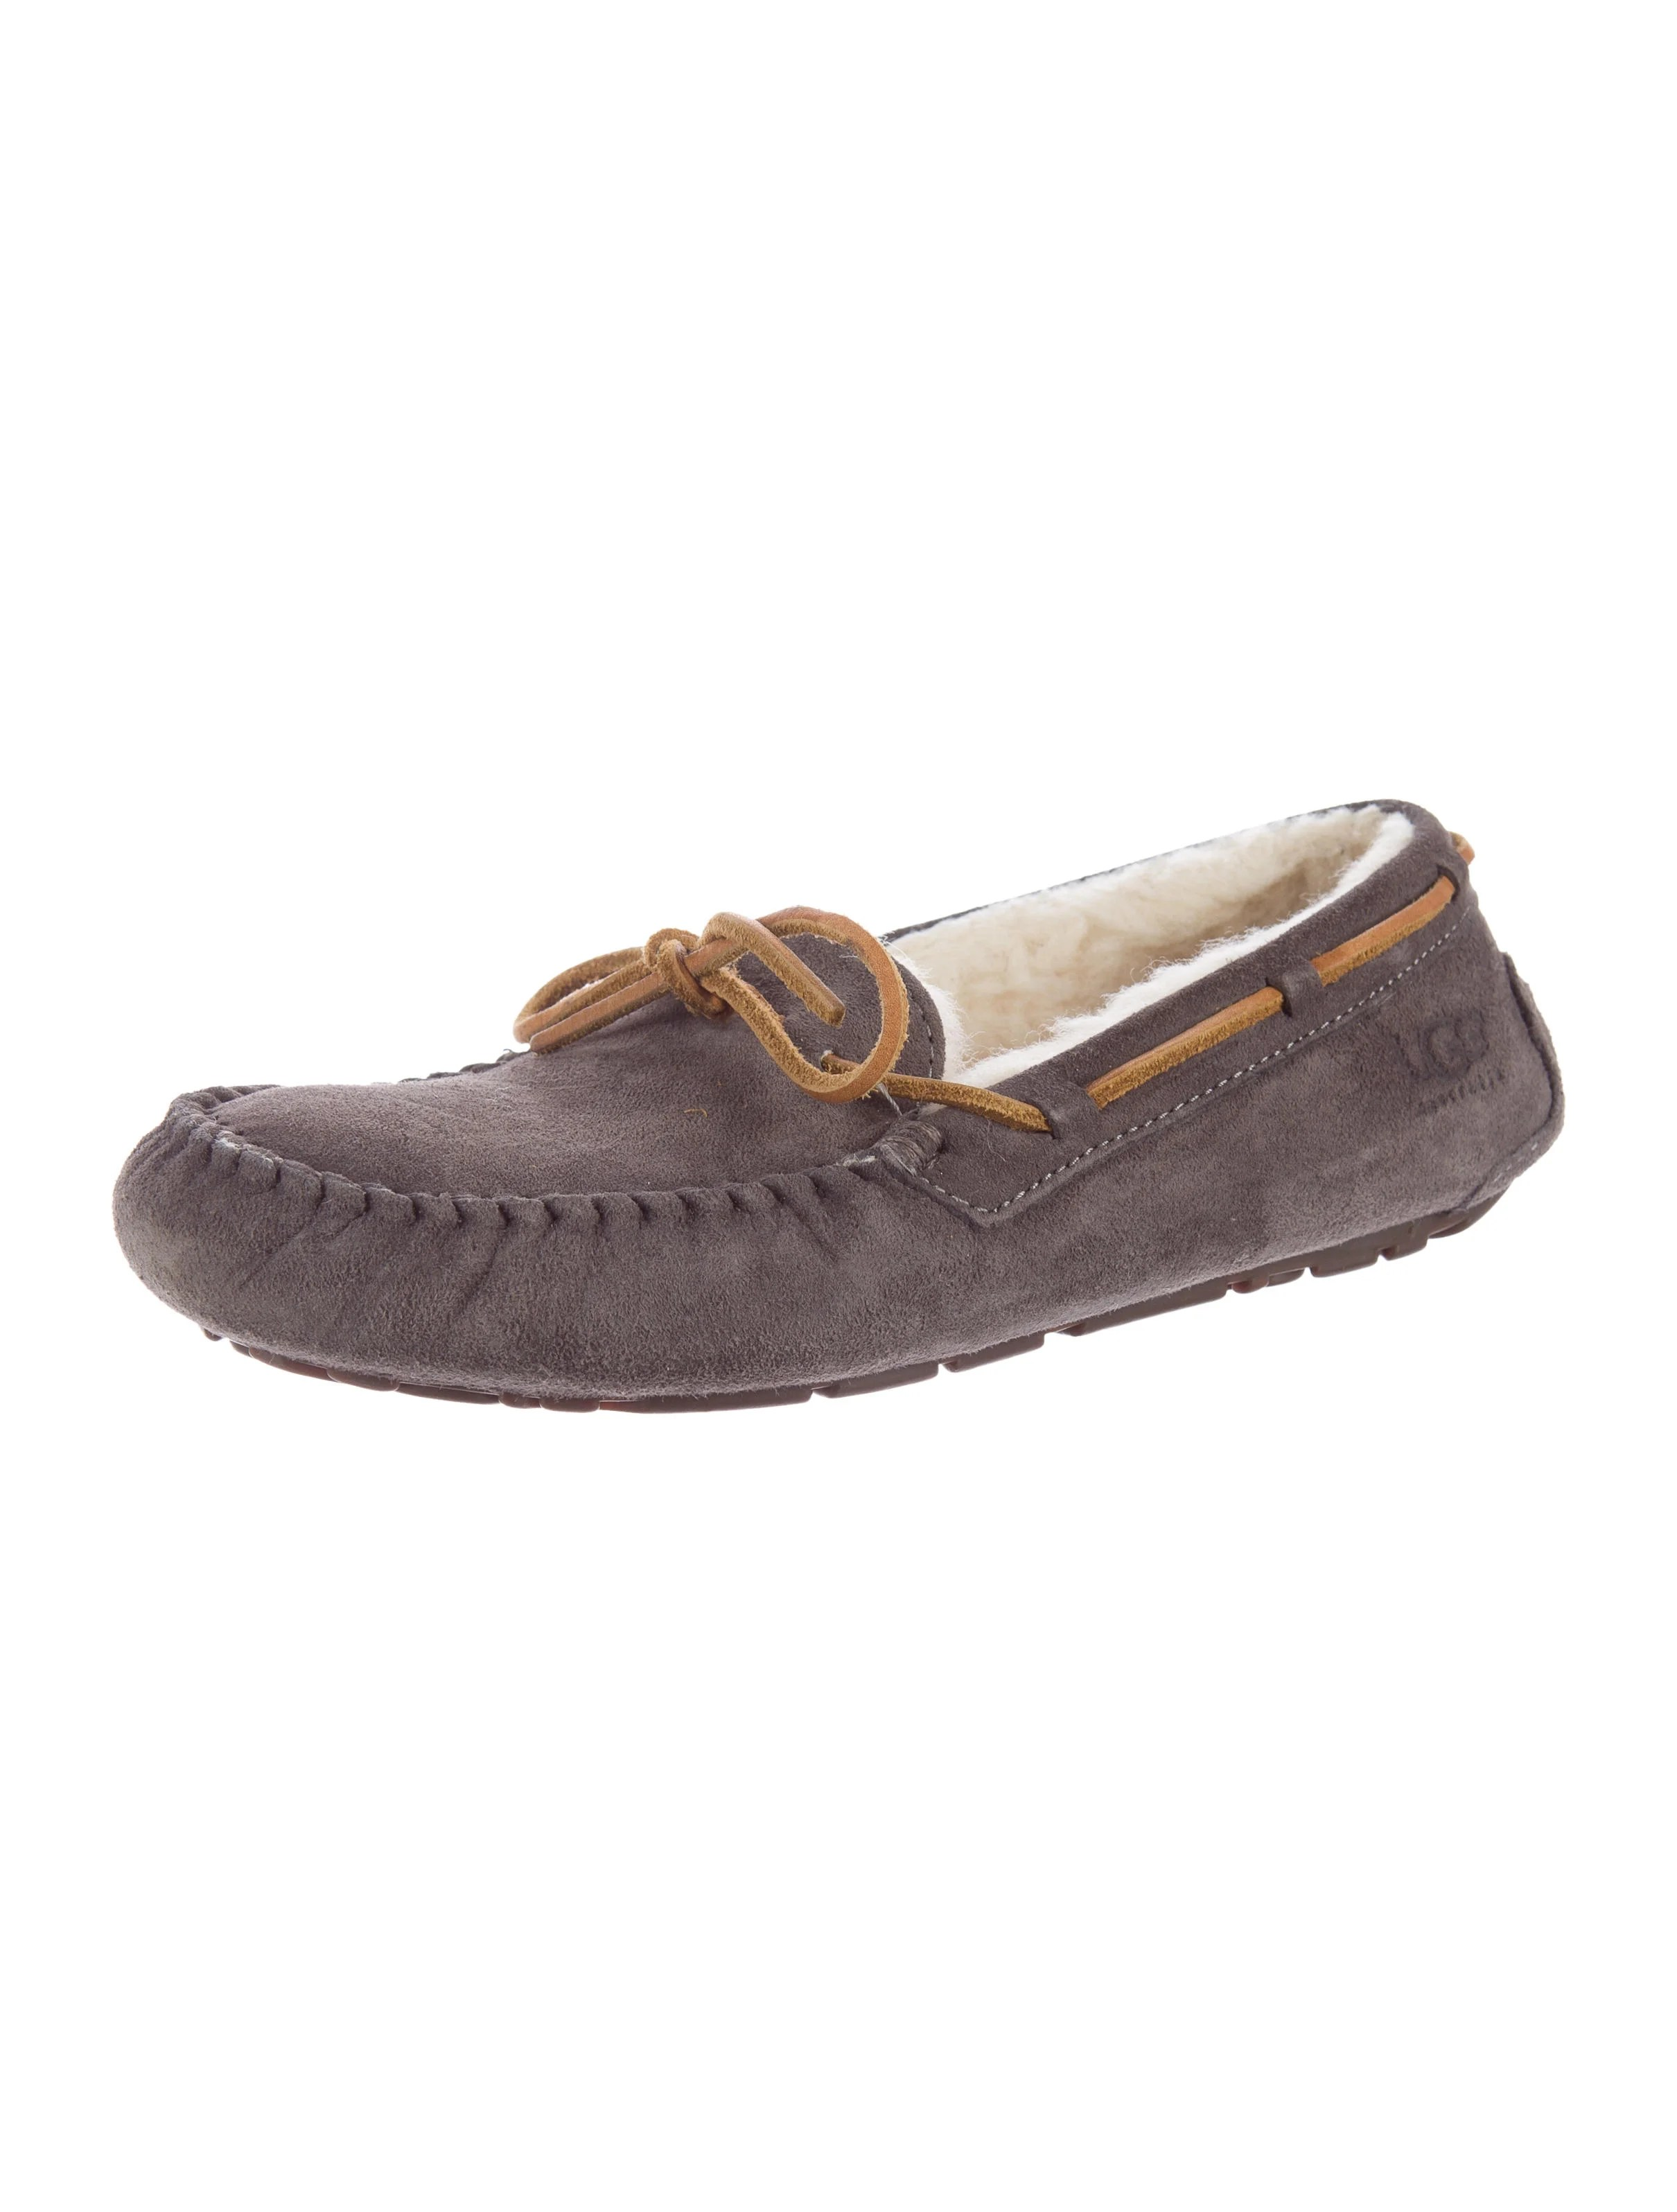 Slippers Australia Ugg Australia Dakota Moccasin Slippers Shoes